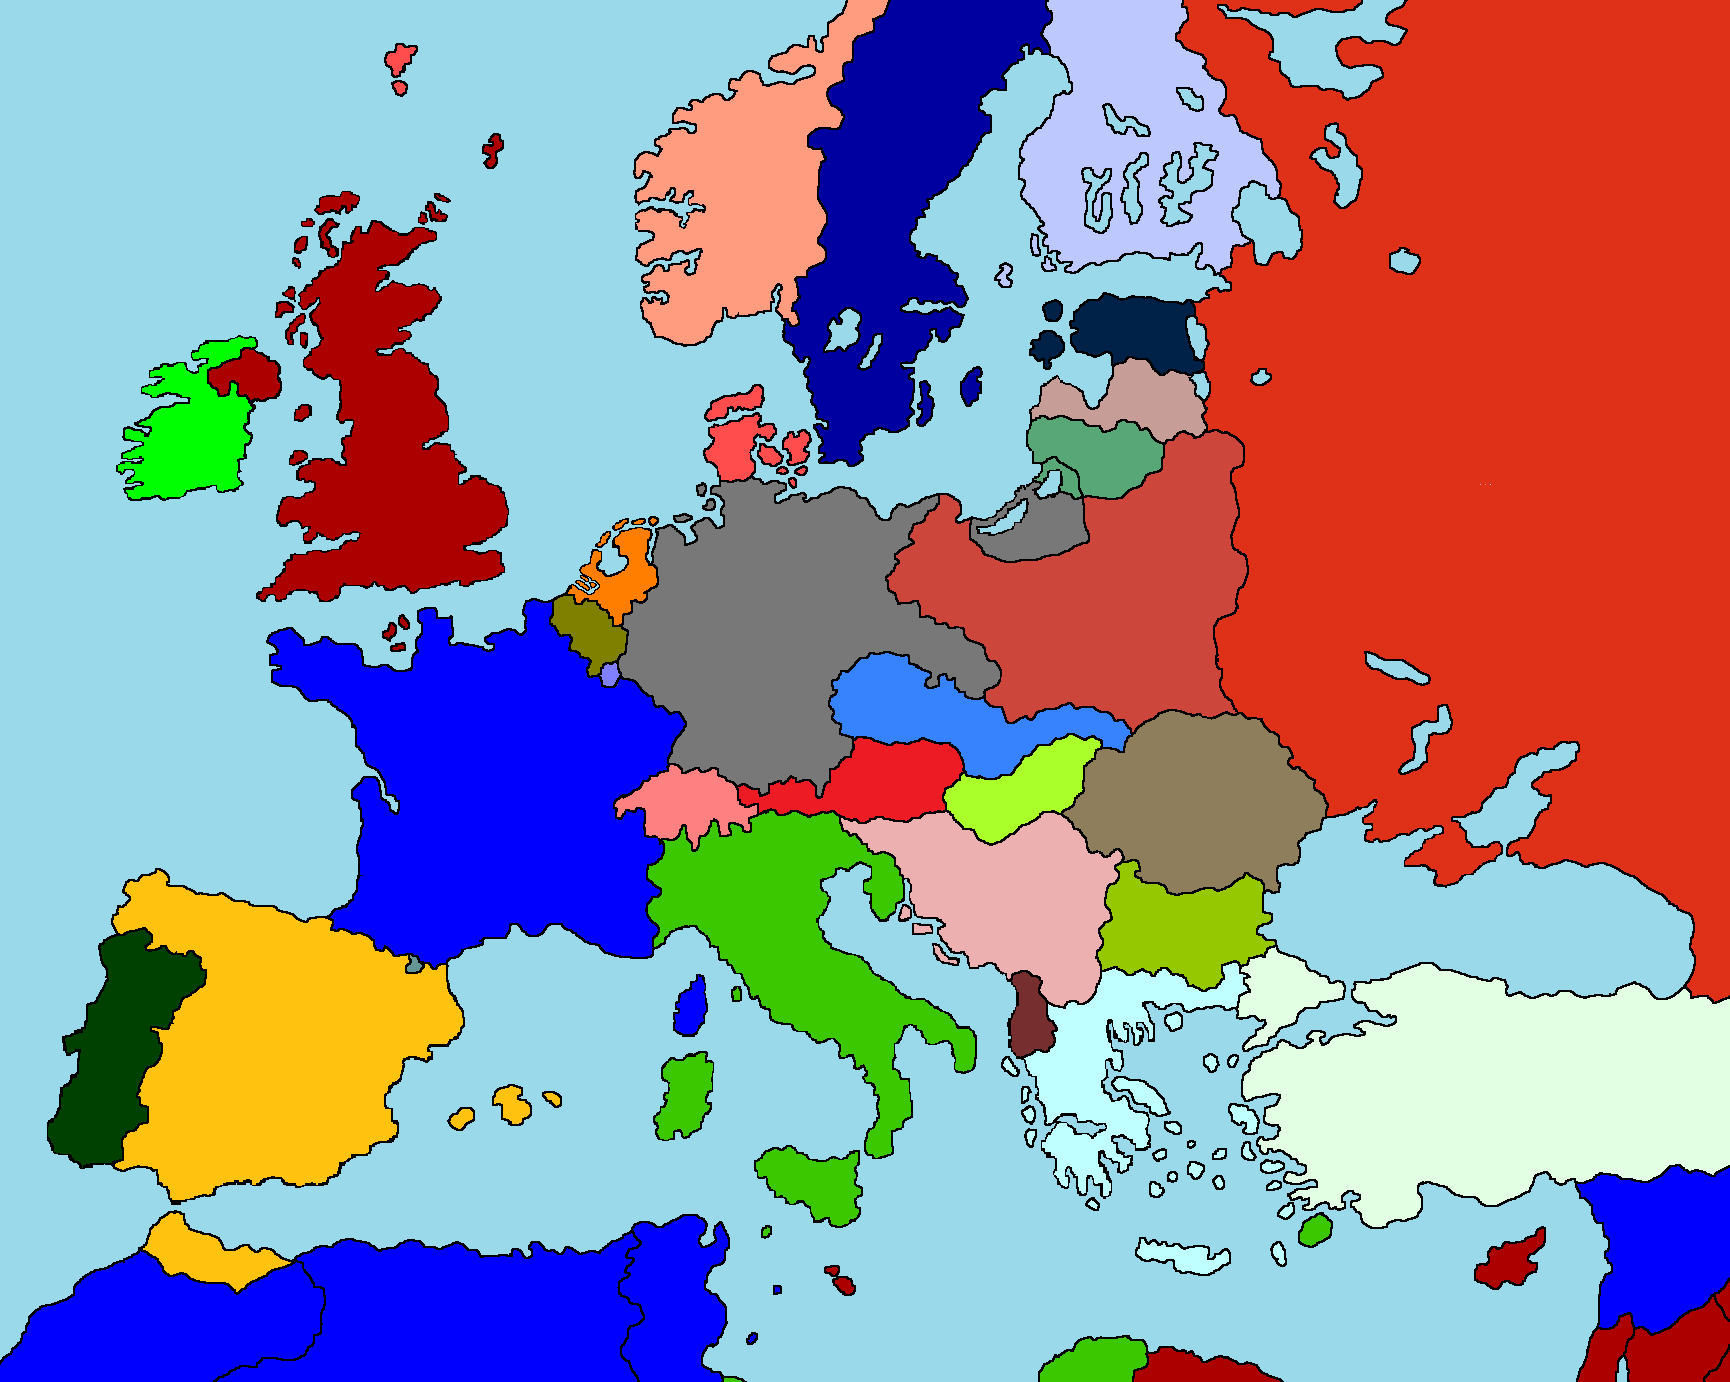 Image Drawn Colored Blank Map Of Europe Png - Blank us state map 1000 pixels width